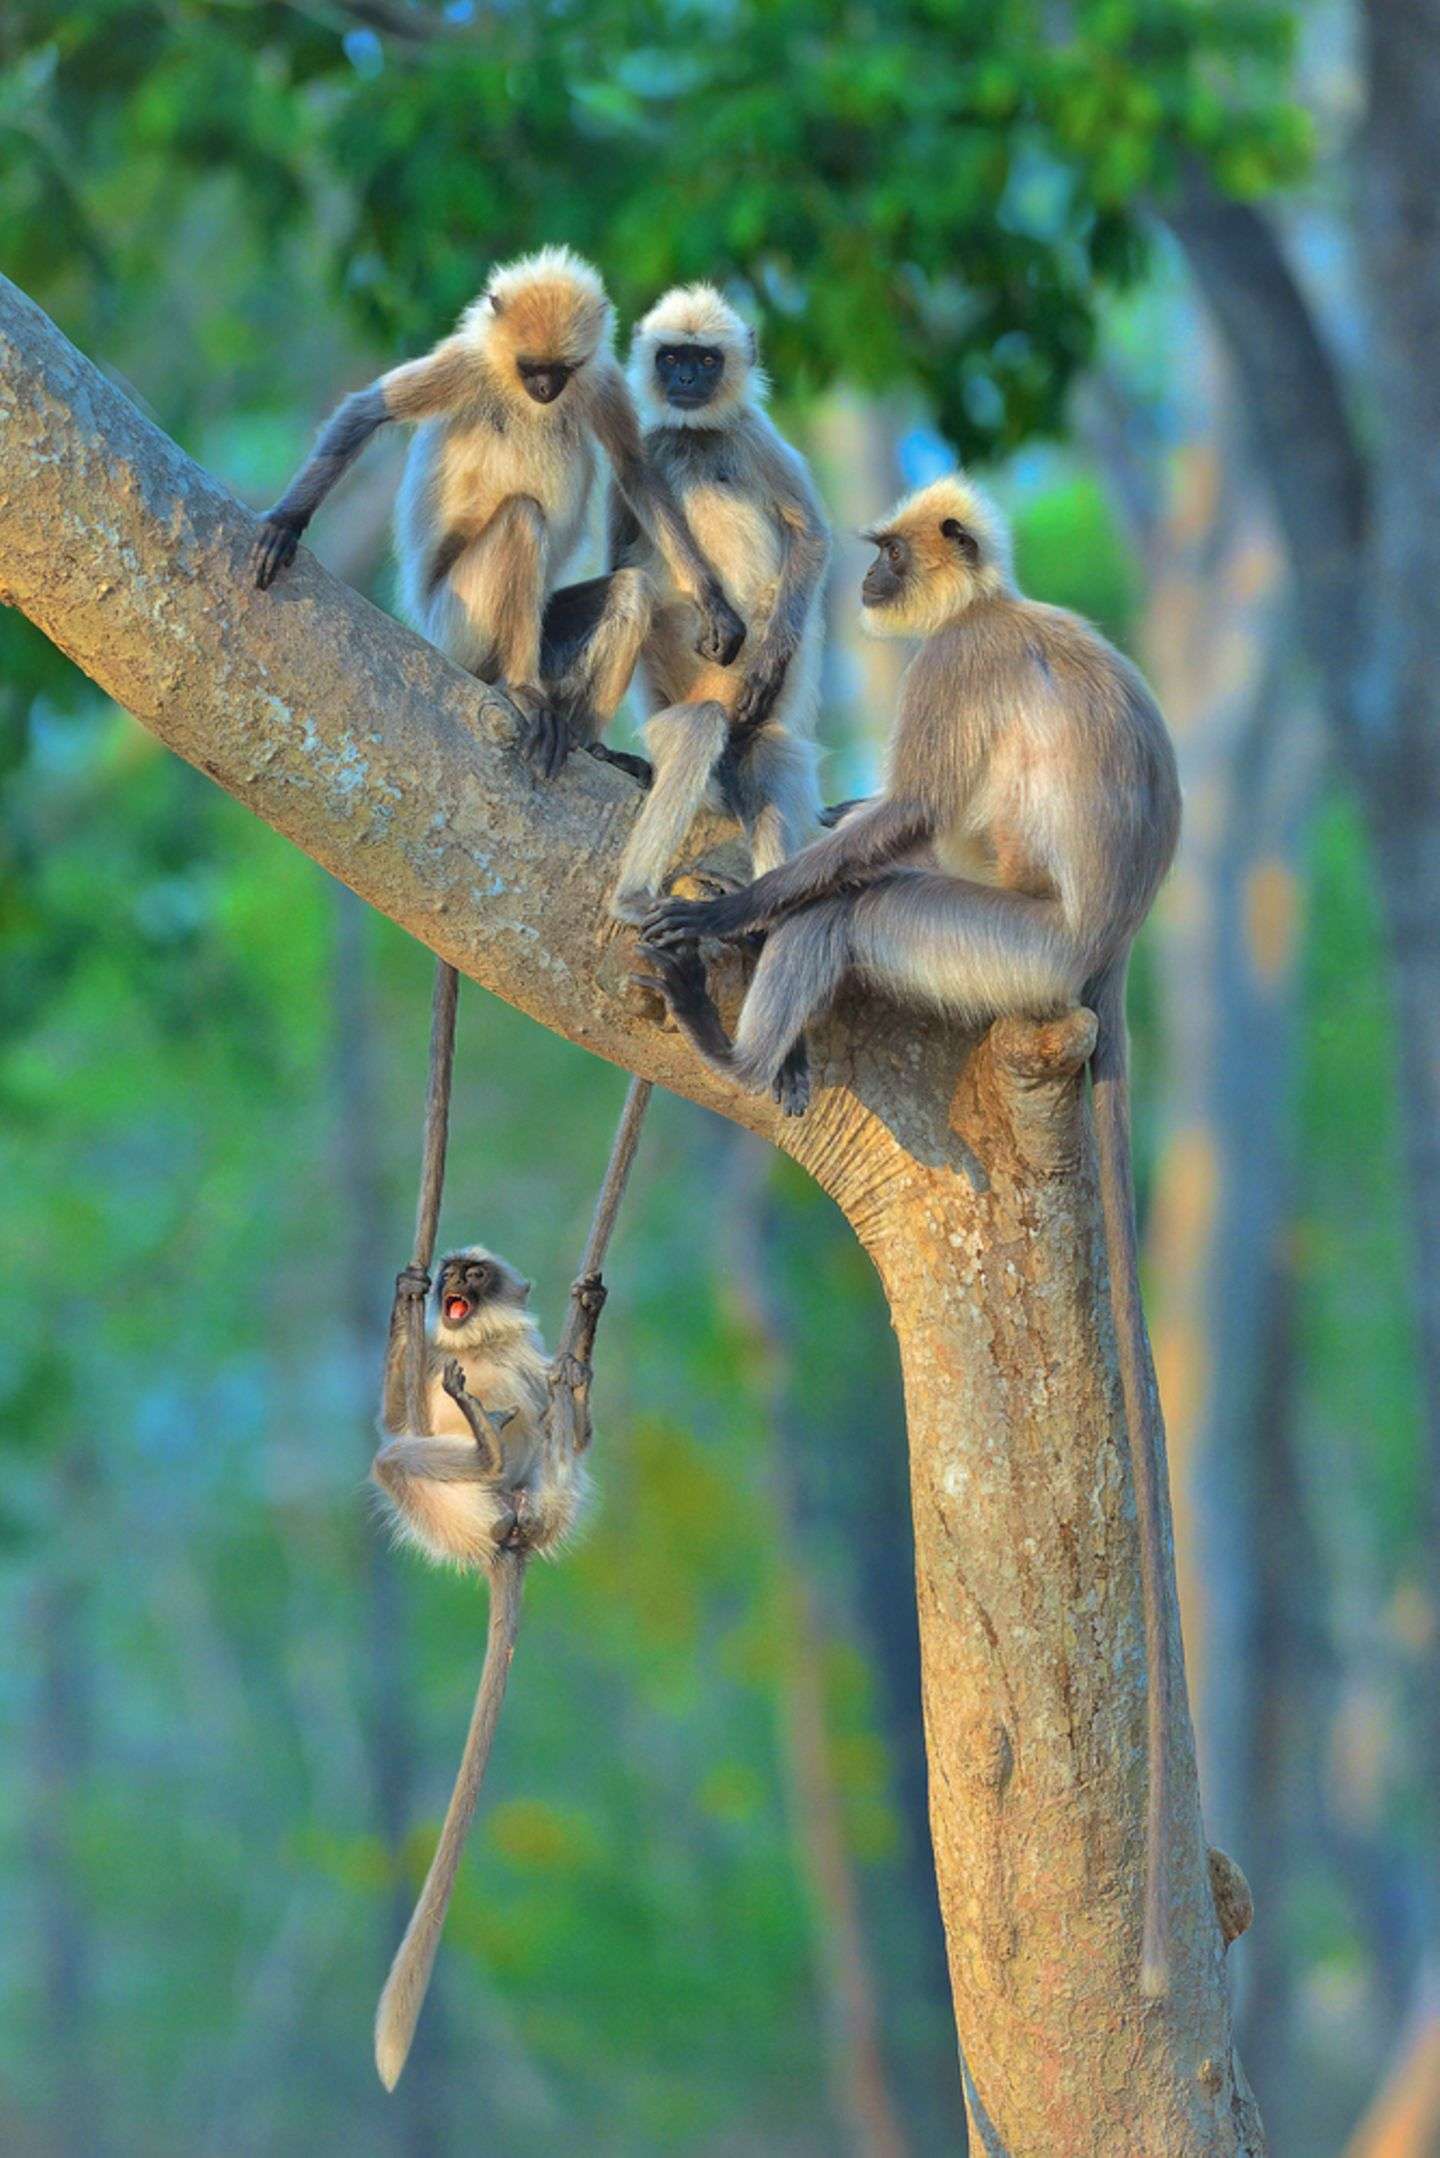 Thomas Vijayan/Comedy Wildlife Photography Award